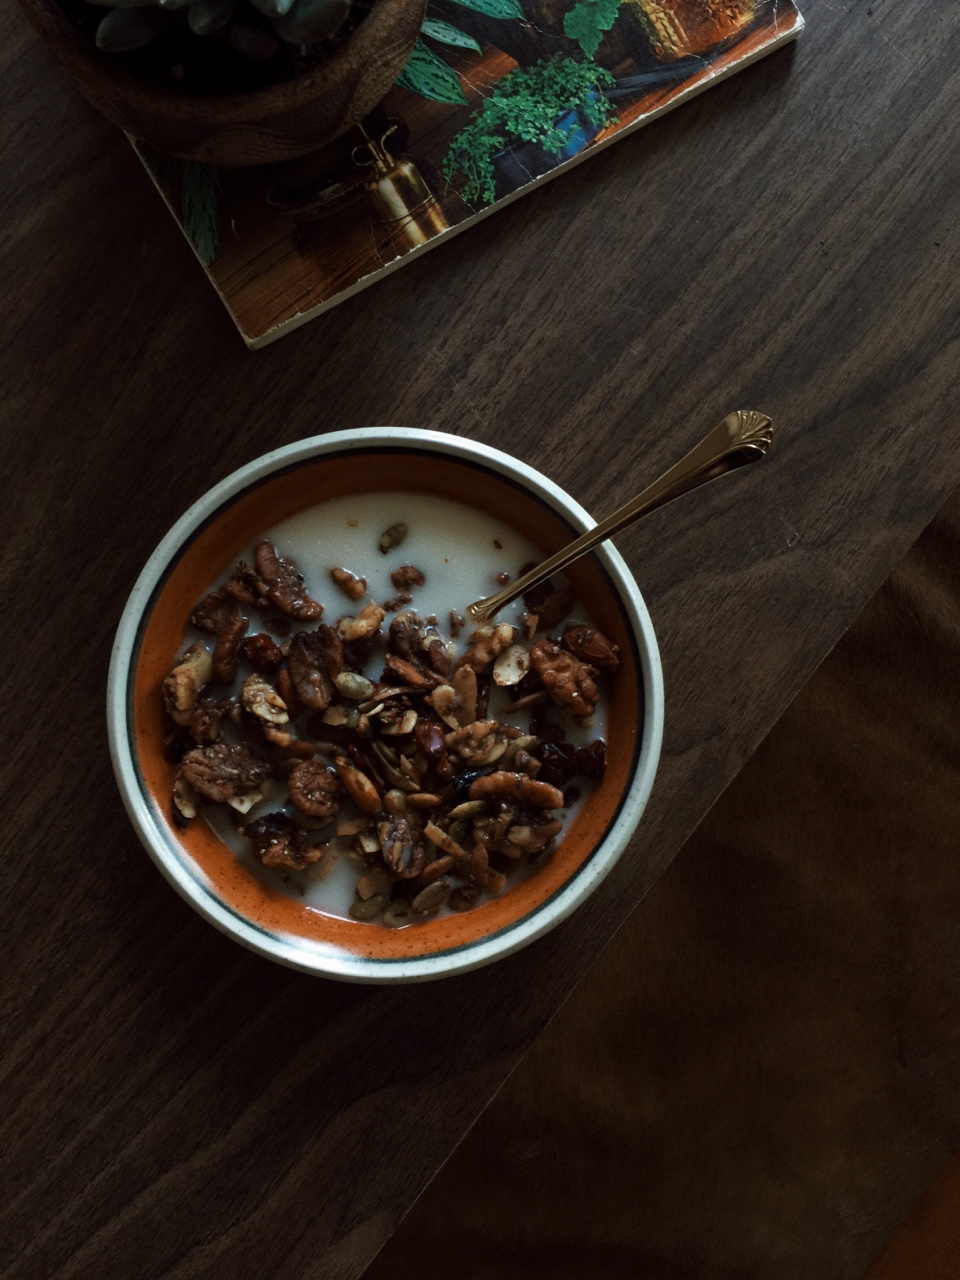 Enjoyed some of my homemade granola this morning